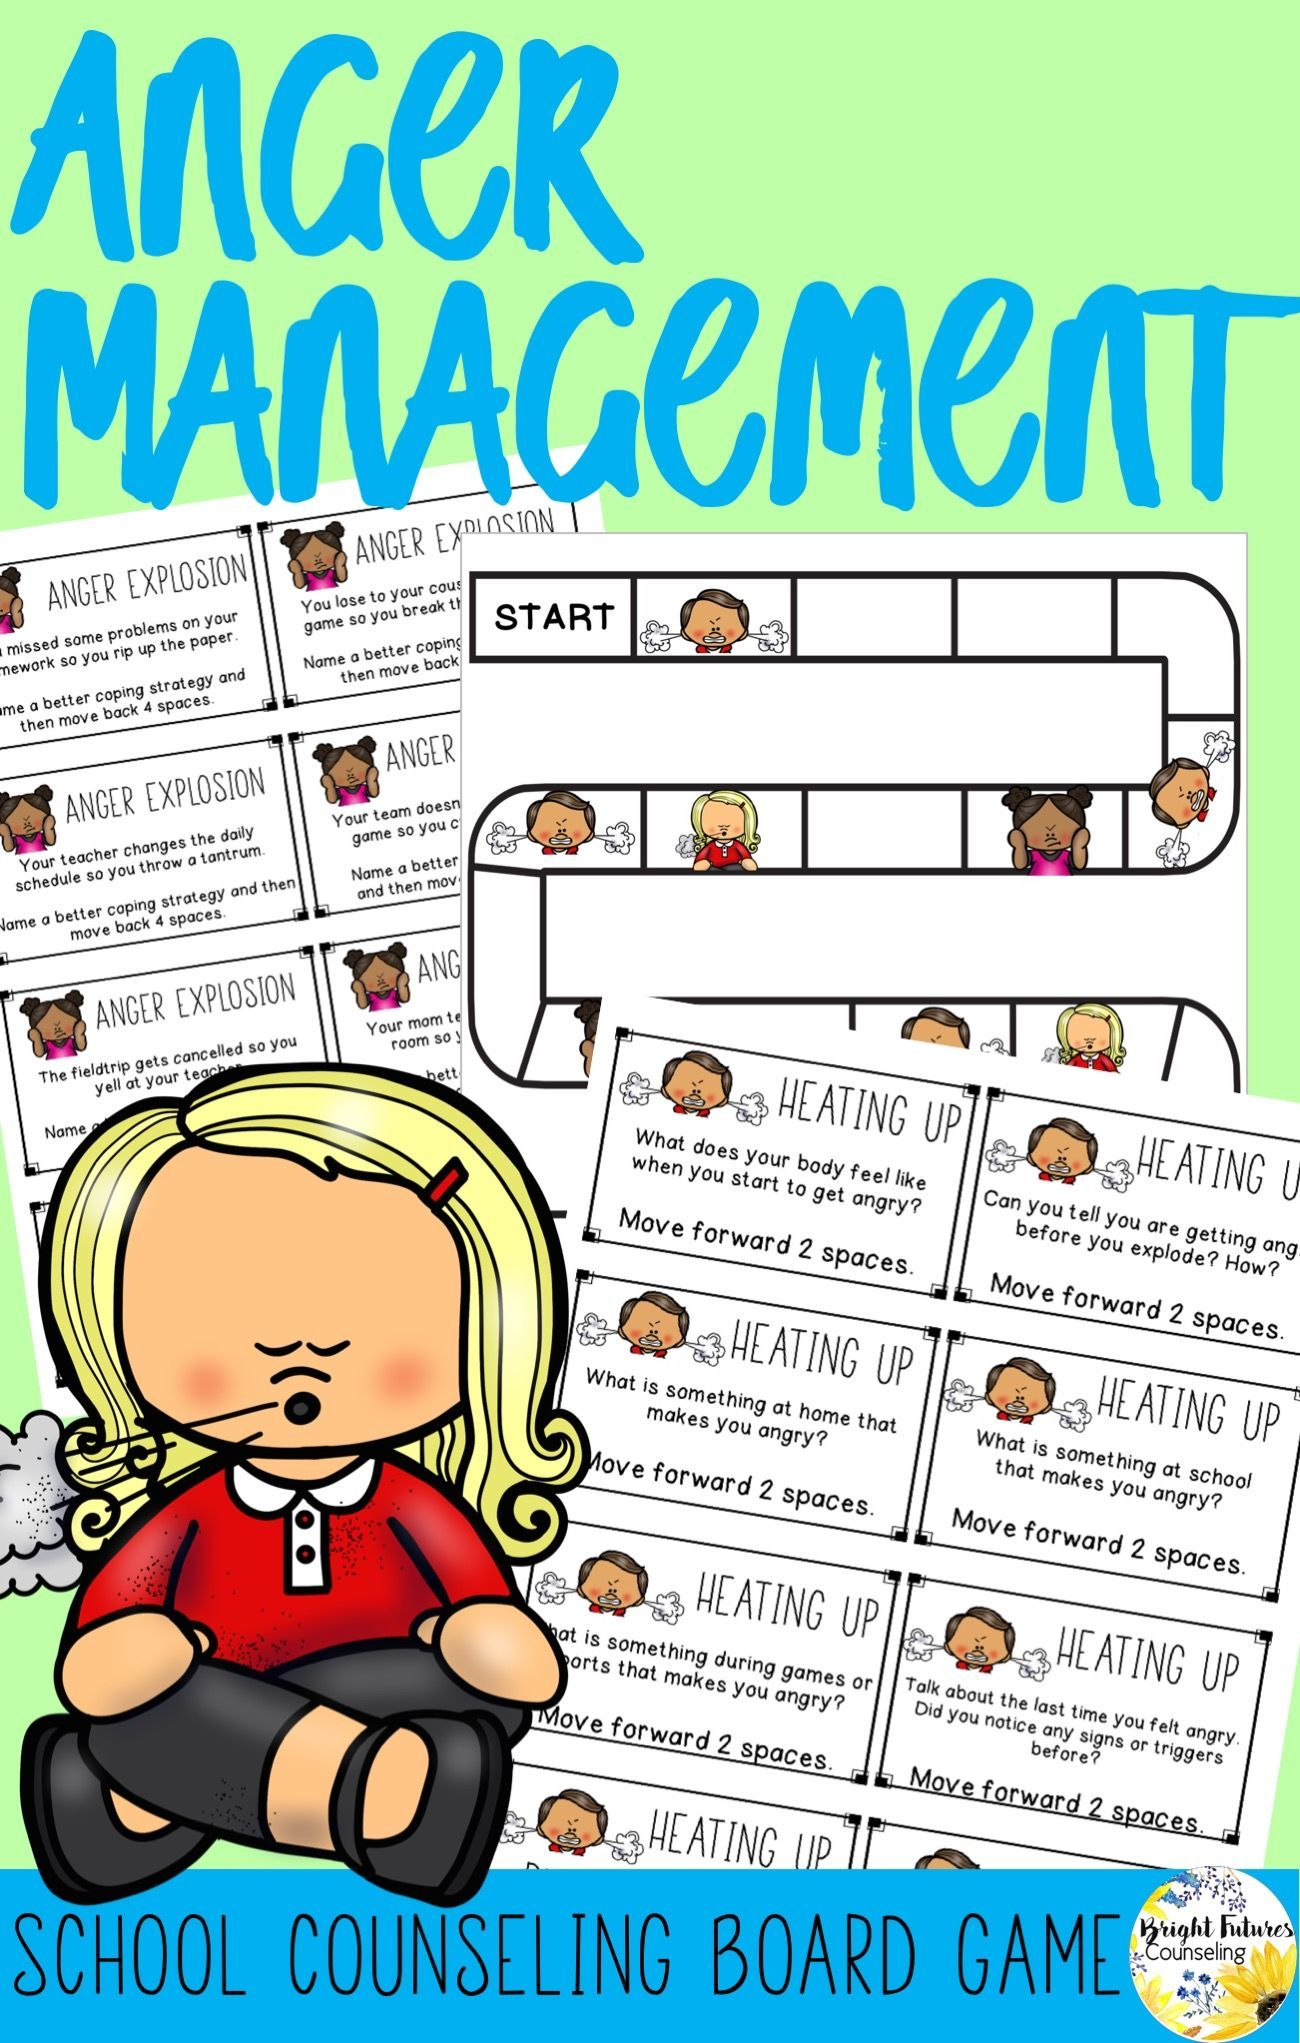 Anger Management Board Game School Counseling Game